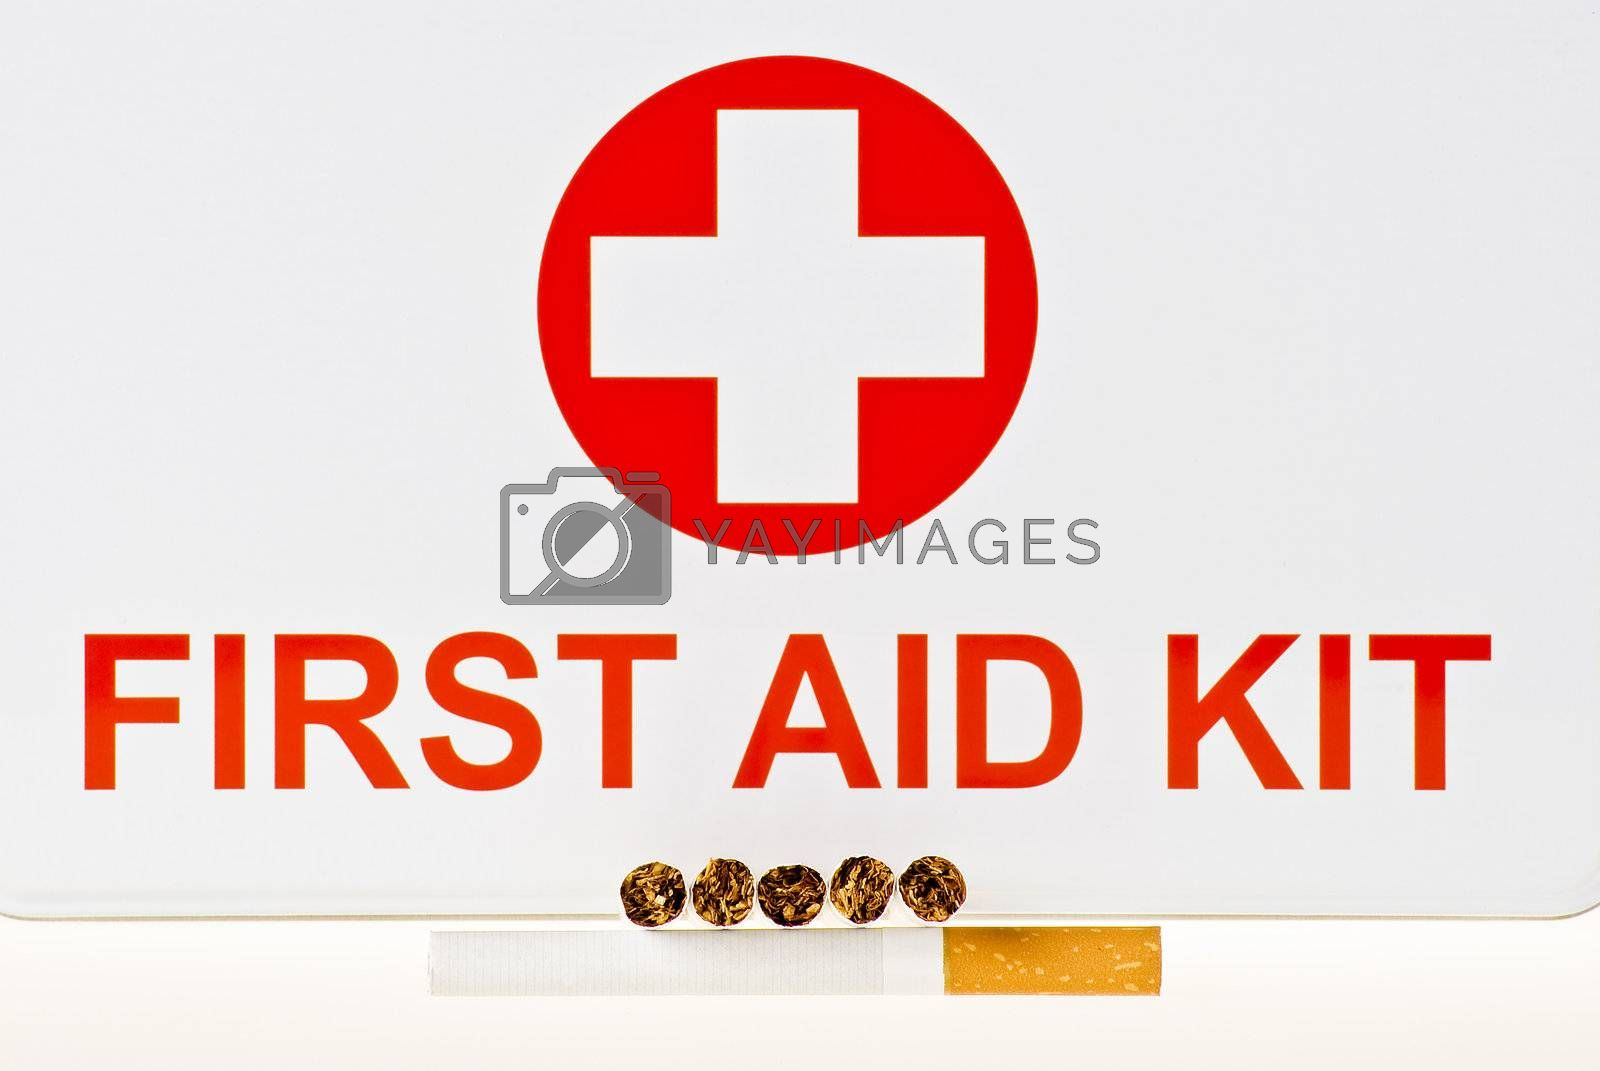 Stop smoking first aid kit by caldix